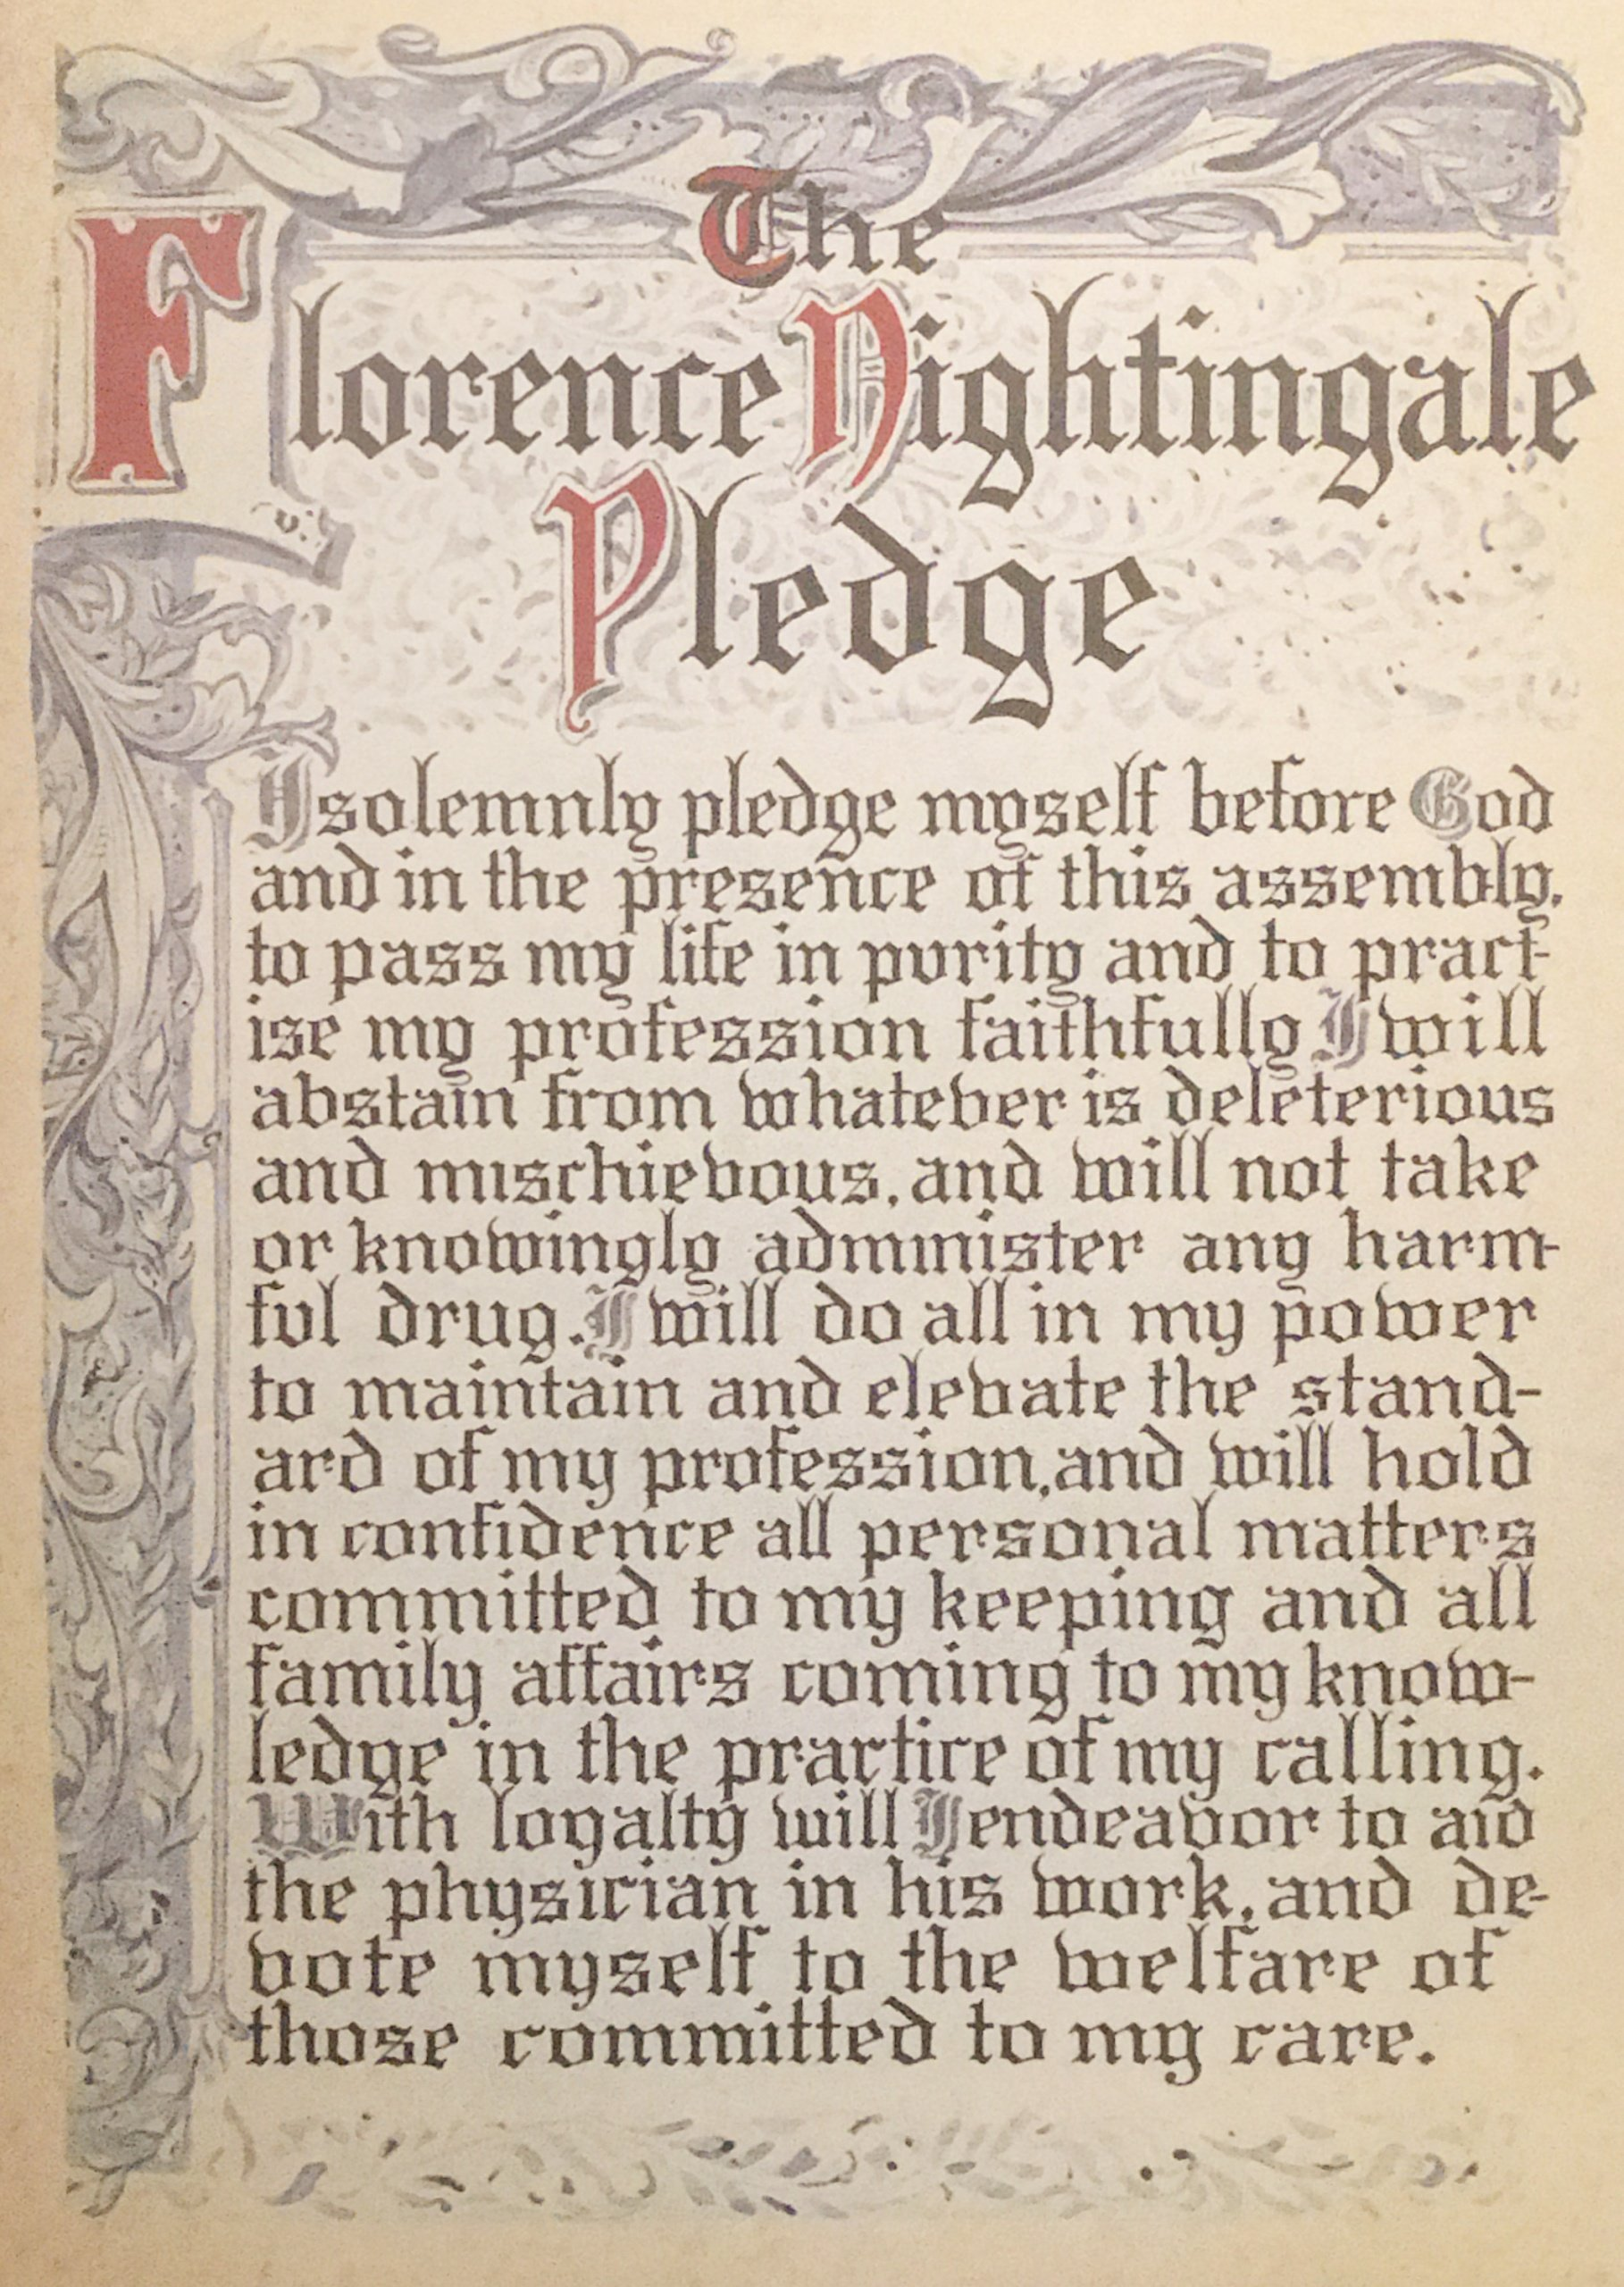 The nightingale pledge